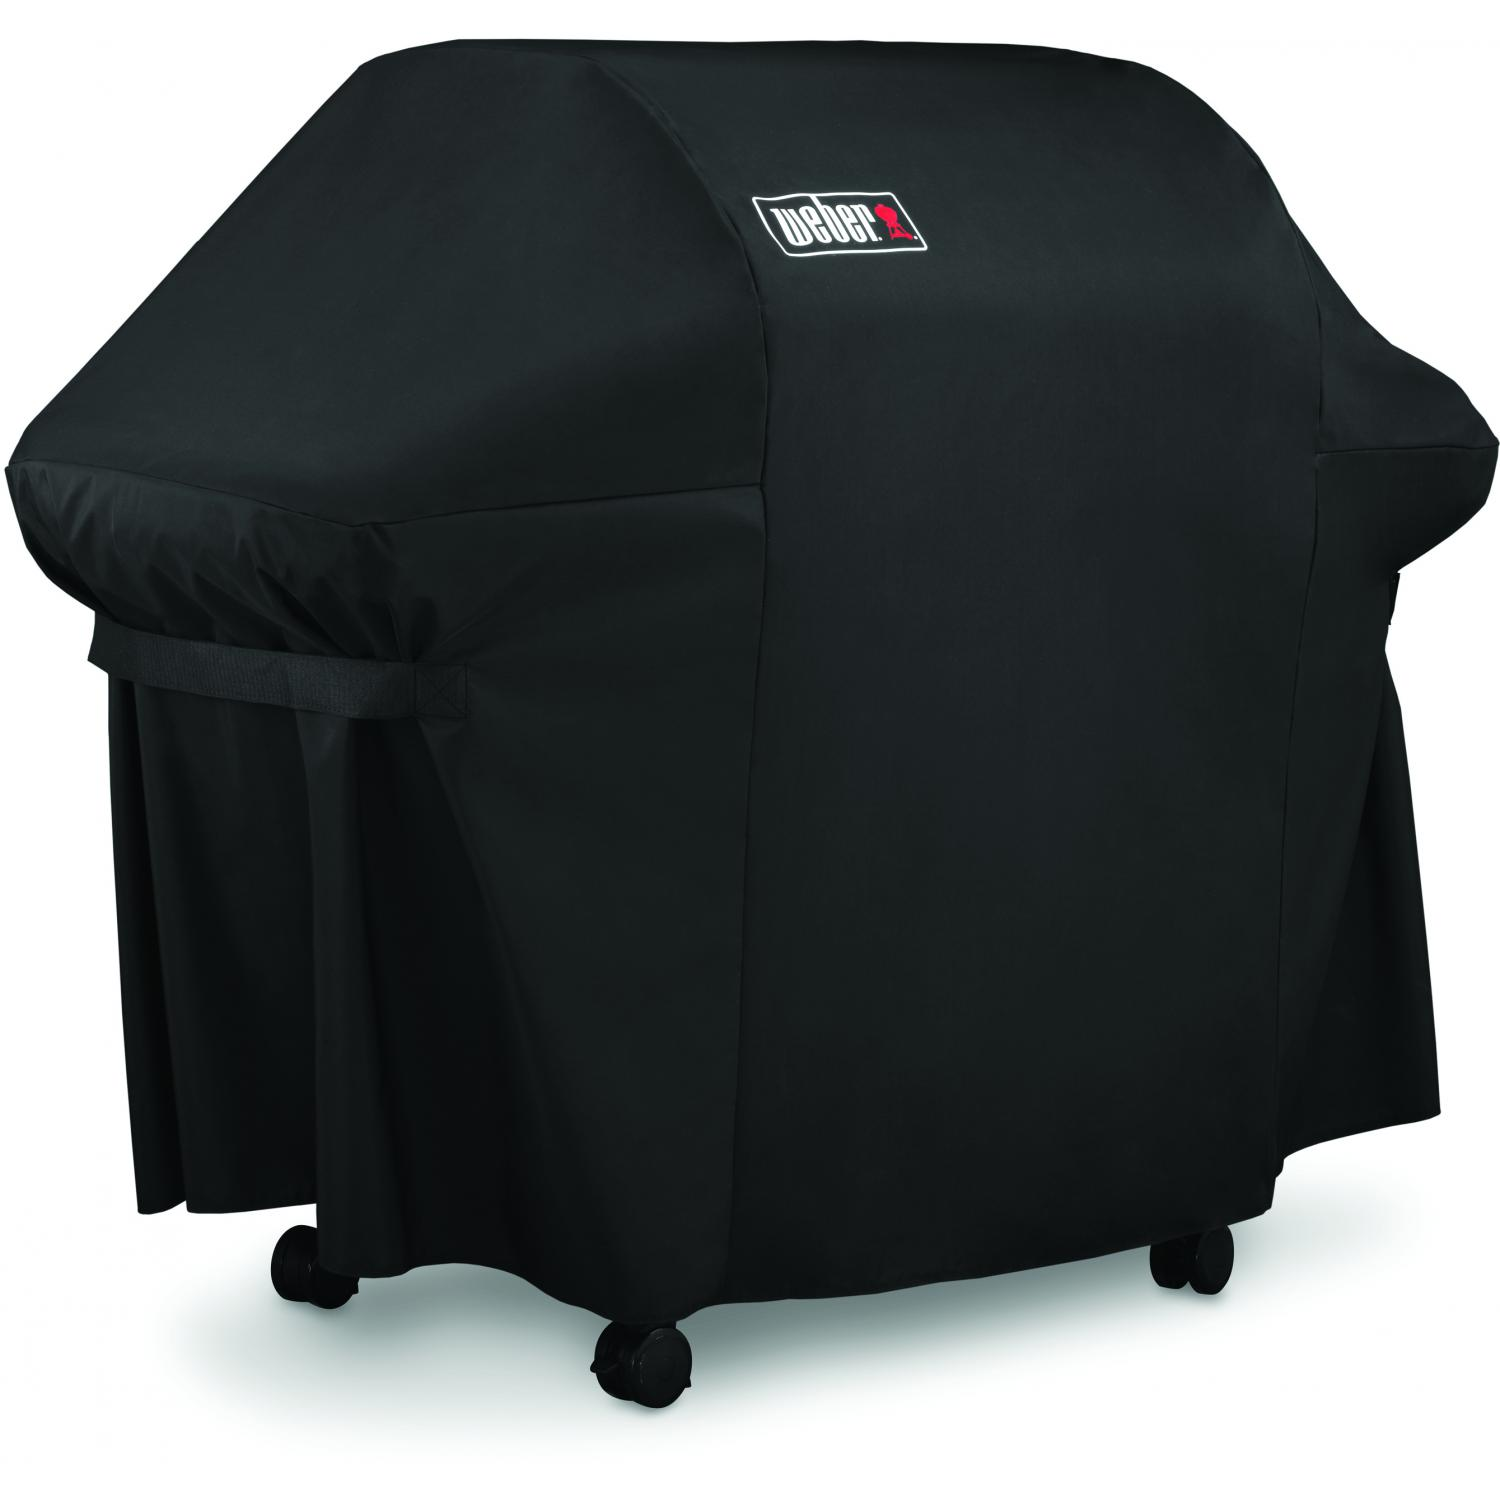 Weber 7107 Premium Grill Cover With Storage Bag For Genesis E & S Series Gas Grills 2893286